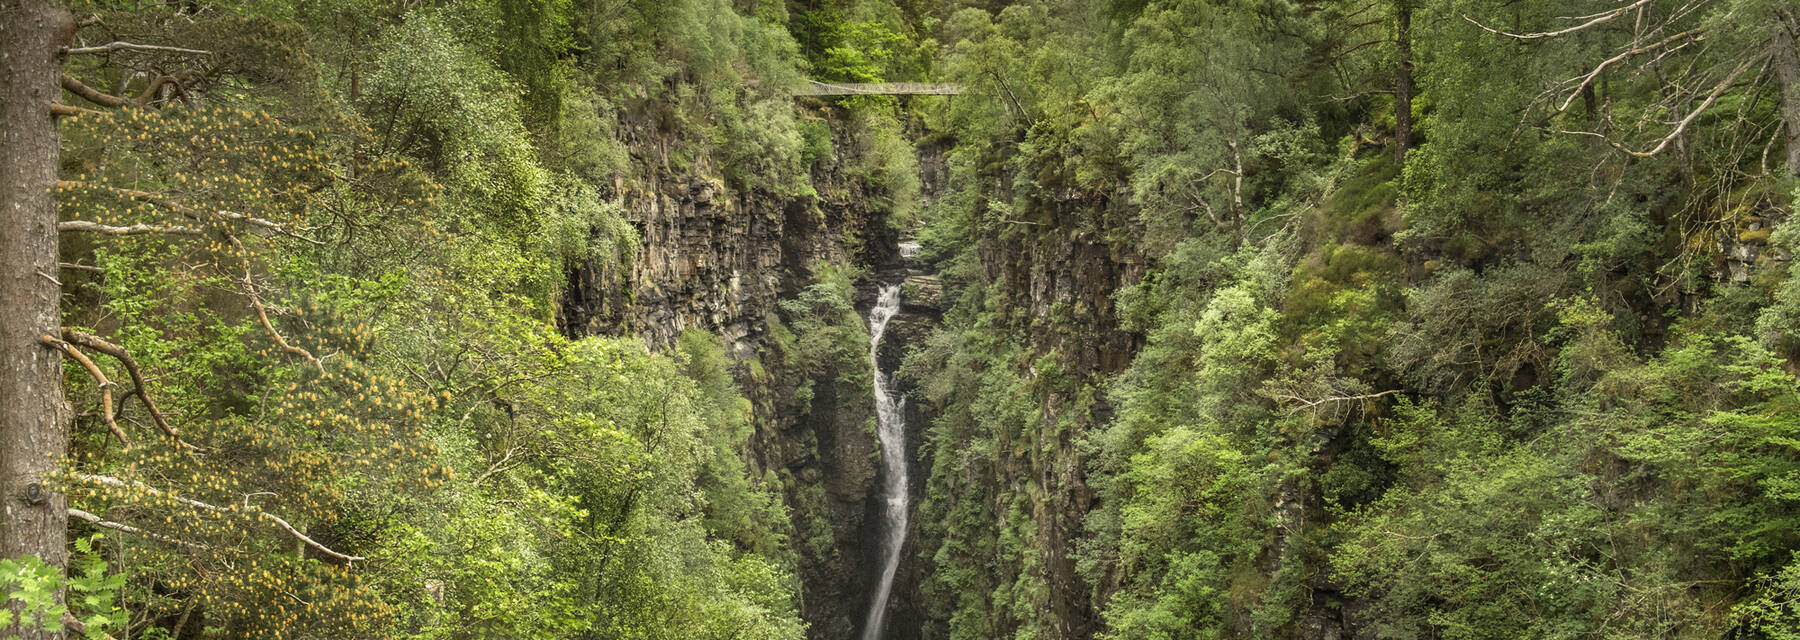 A view looking along a deep, woodland gorge towards a waterfall. A suspension bridge spans the gorge above the waterfall.